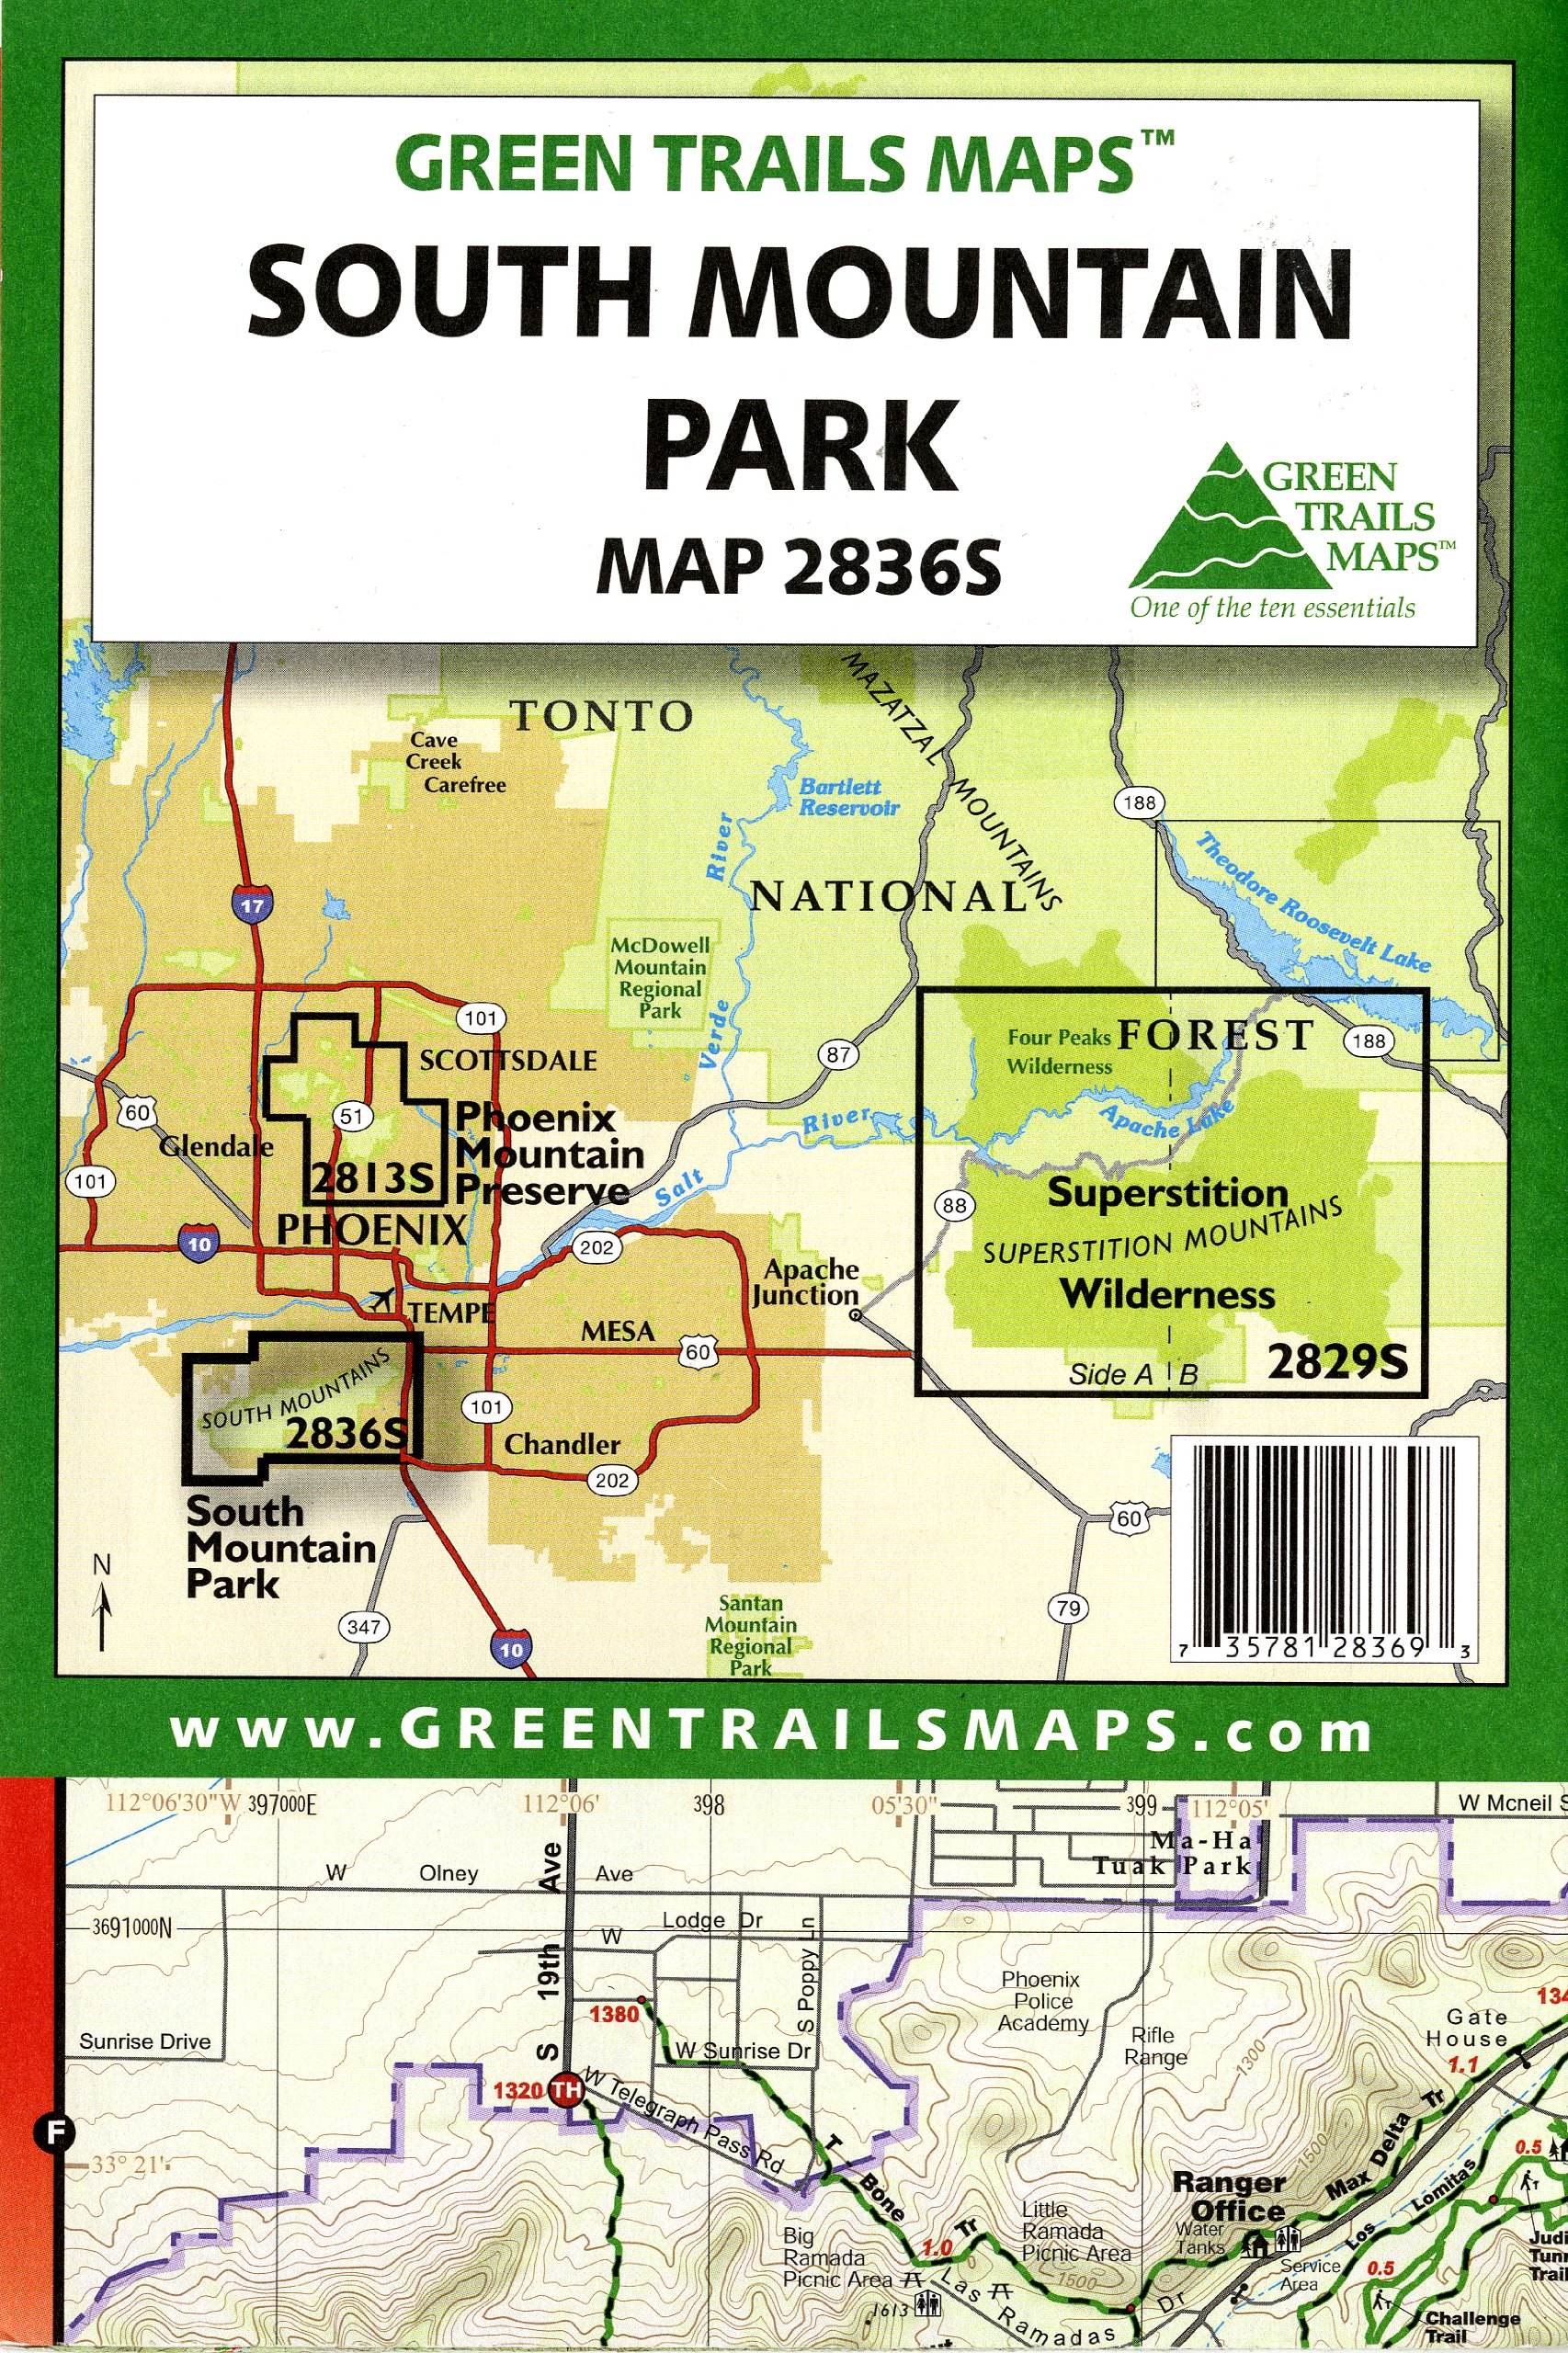 South Mountain Park (Waterproof) (Green Trails Maps, Map 2836S